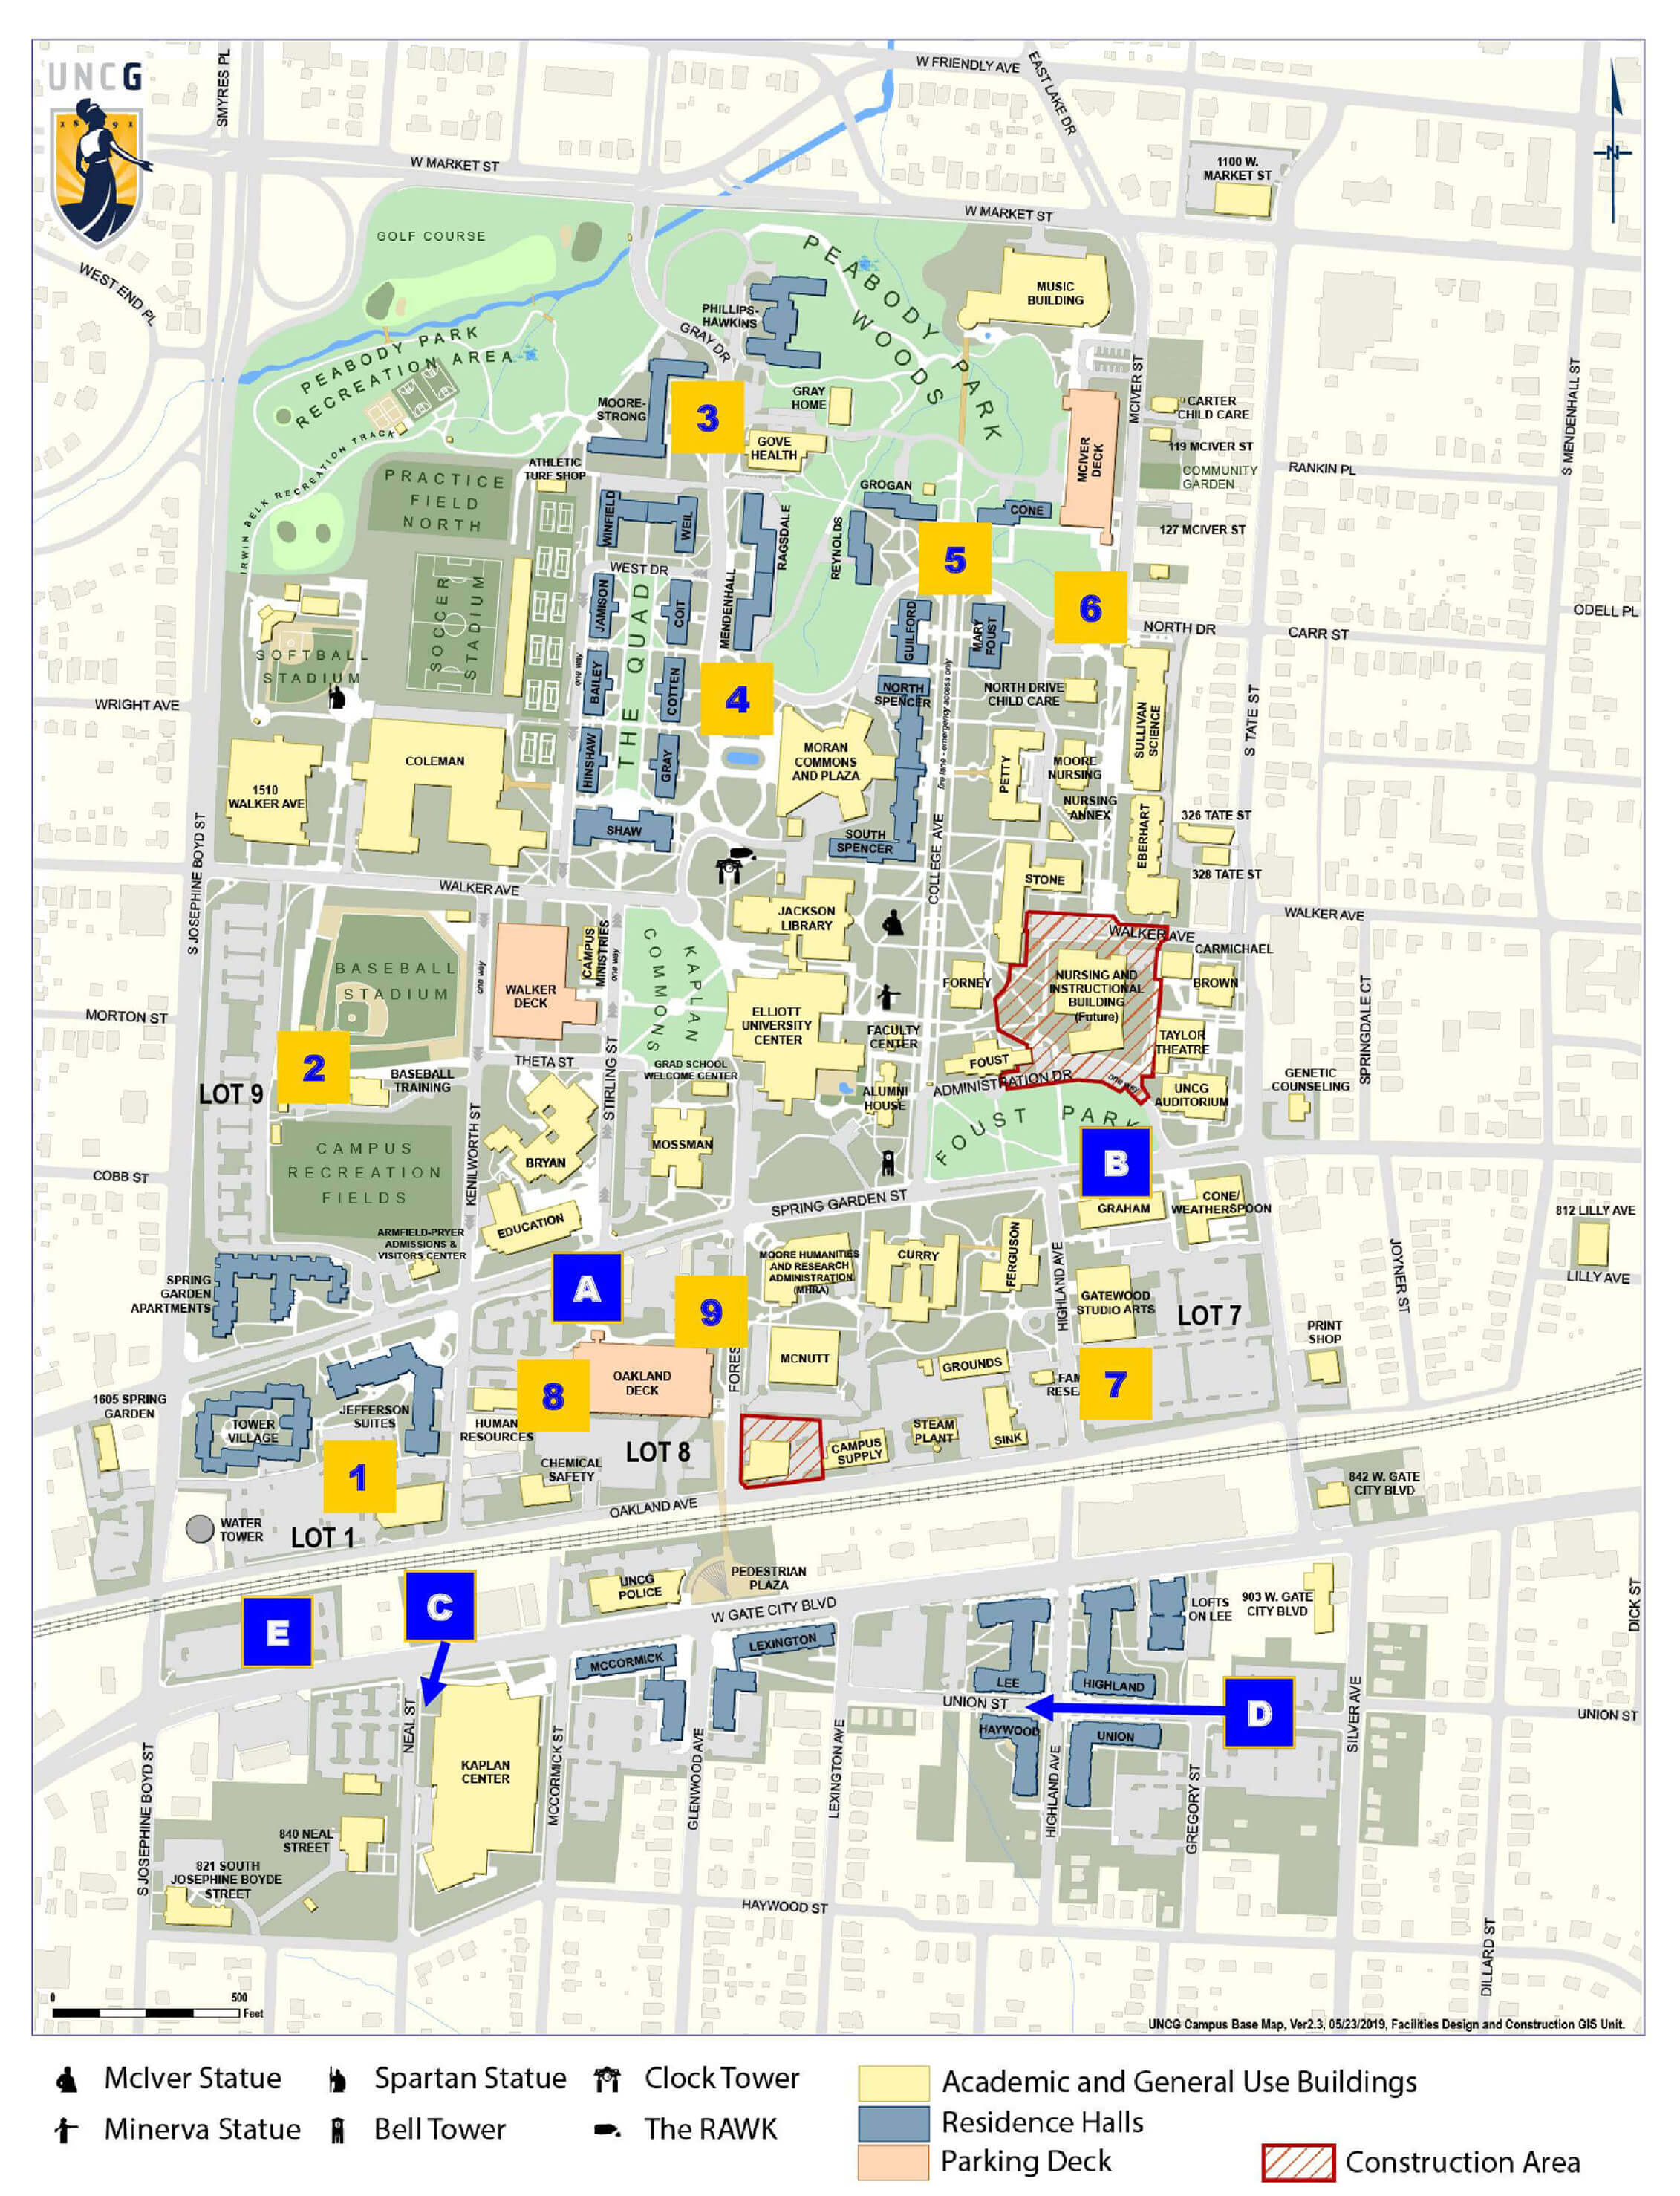 UNCG Fall Move-In Shuttle Map for Wednesday (8/14)